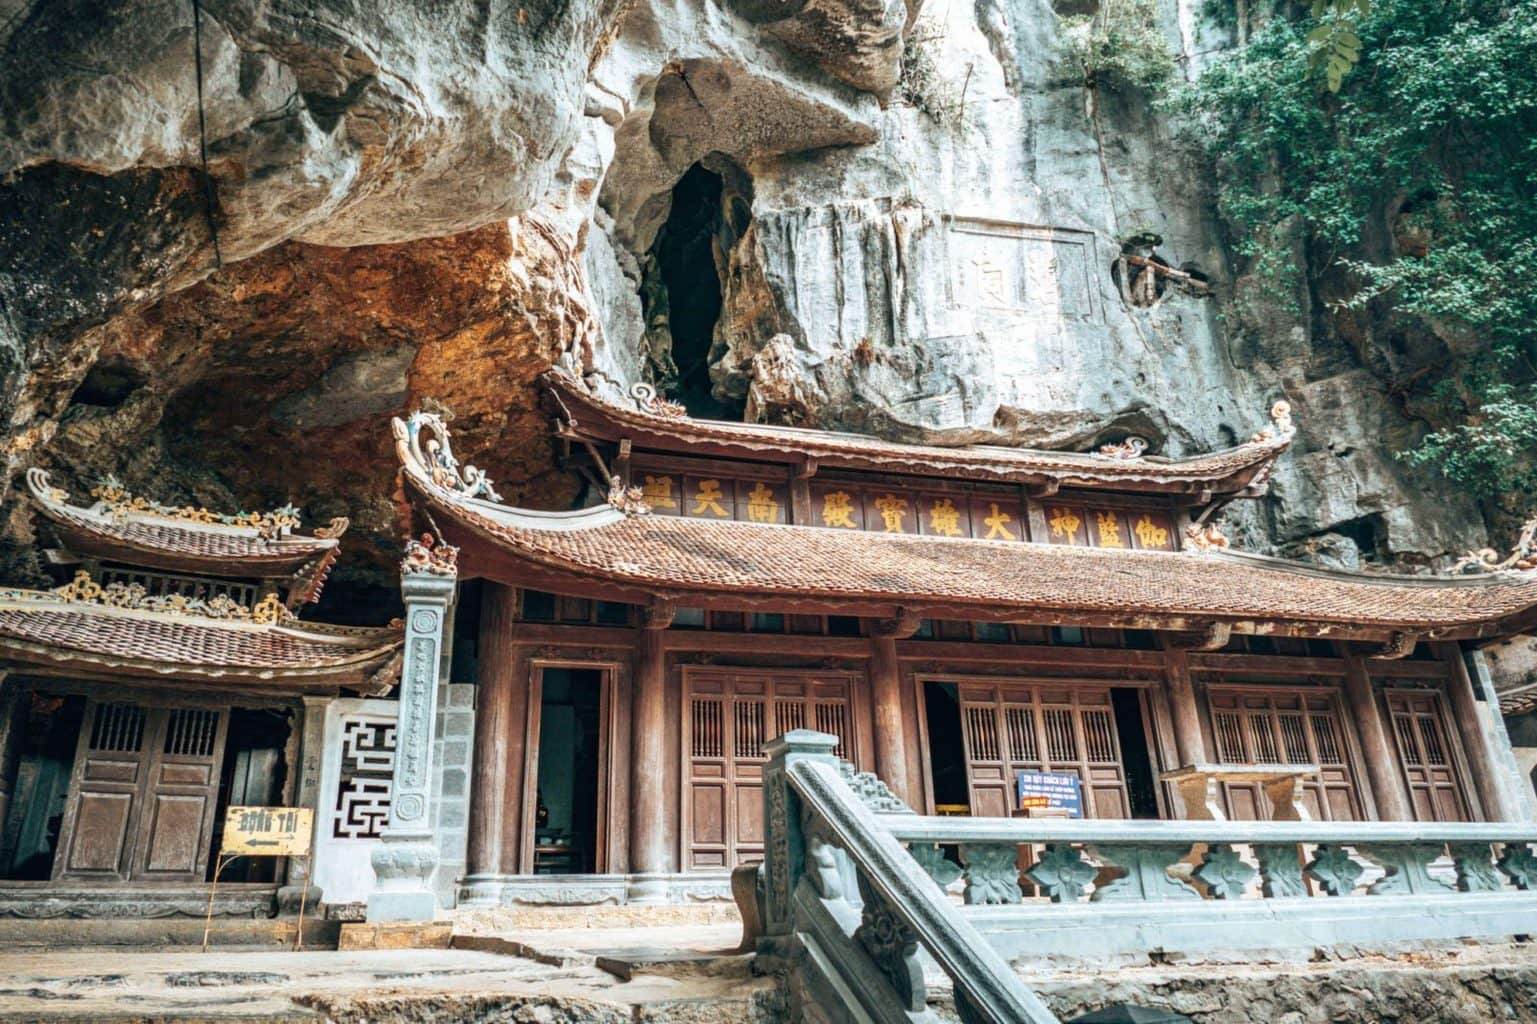 Picture of the Bich Dong temple in Tam Coc Vietnam